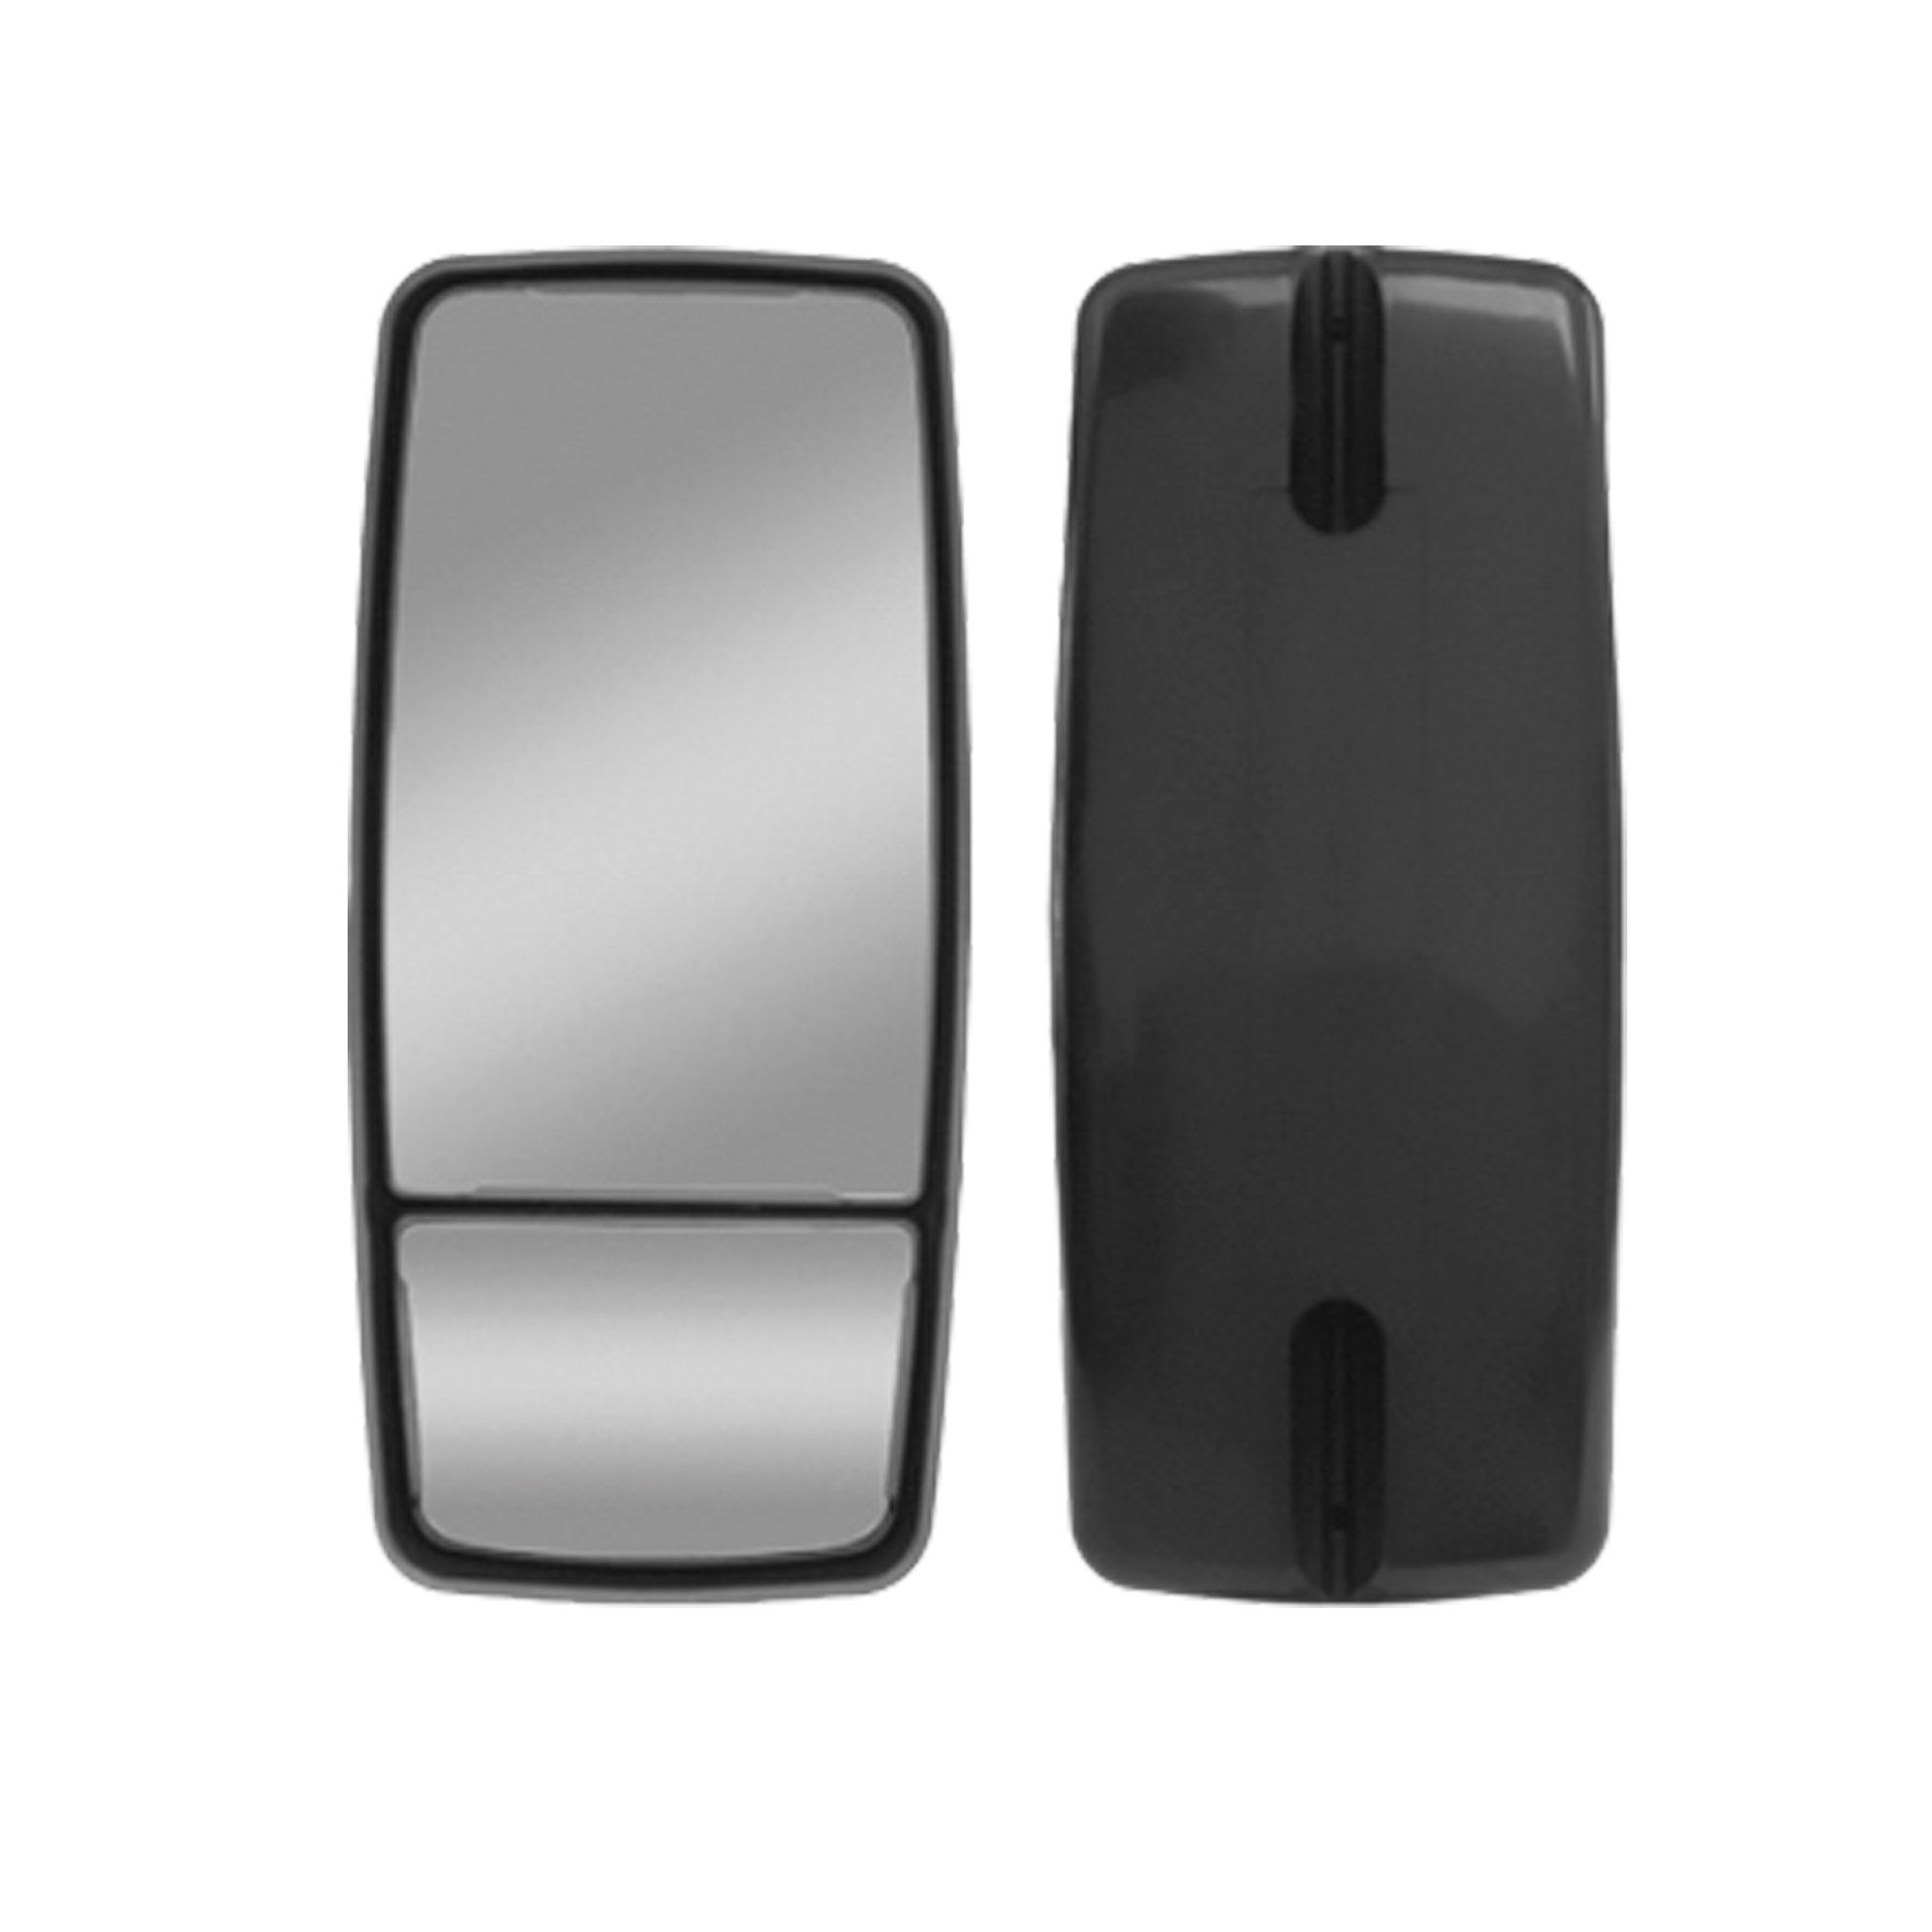 Espelho Retrovisor VW Constellation Bifocal Plano Fabbof